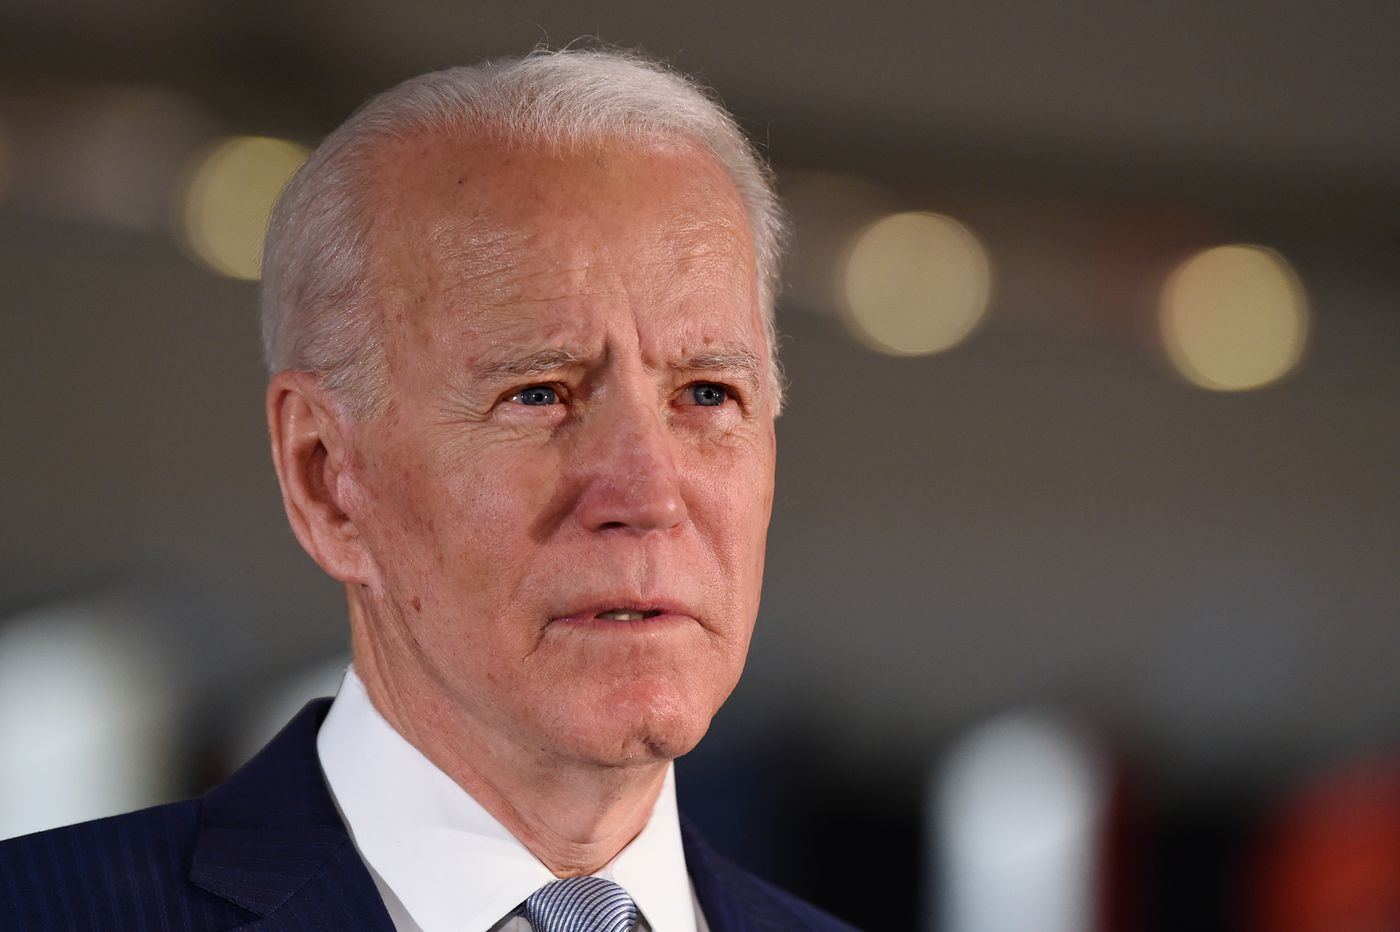 'Our country is in chaos': In Joe Biden, Democrats choose safety over revolution